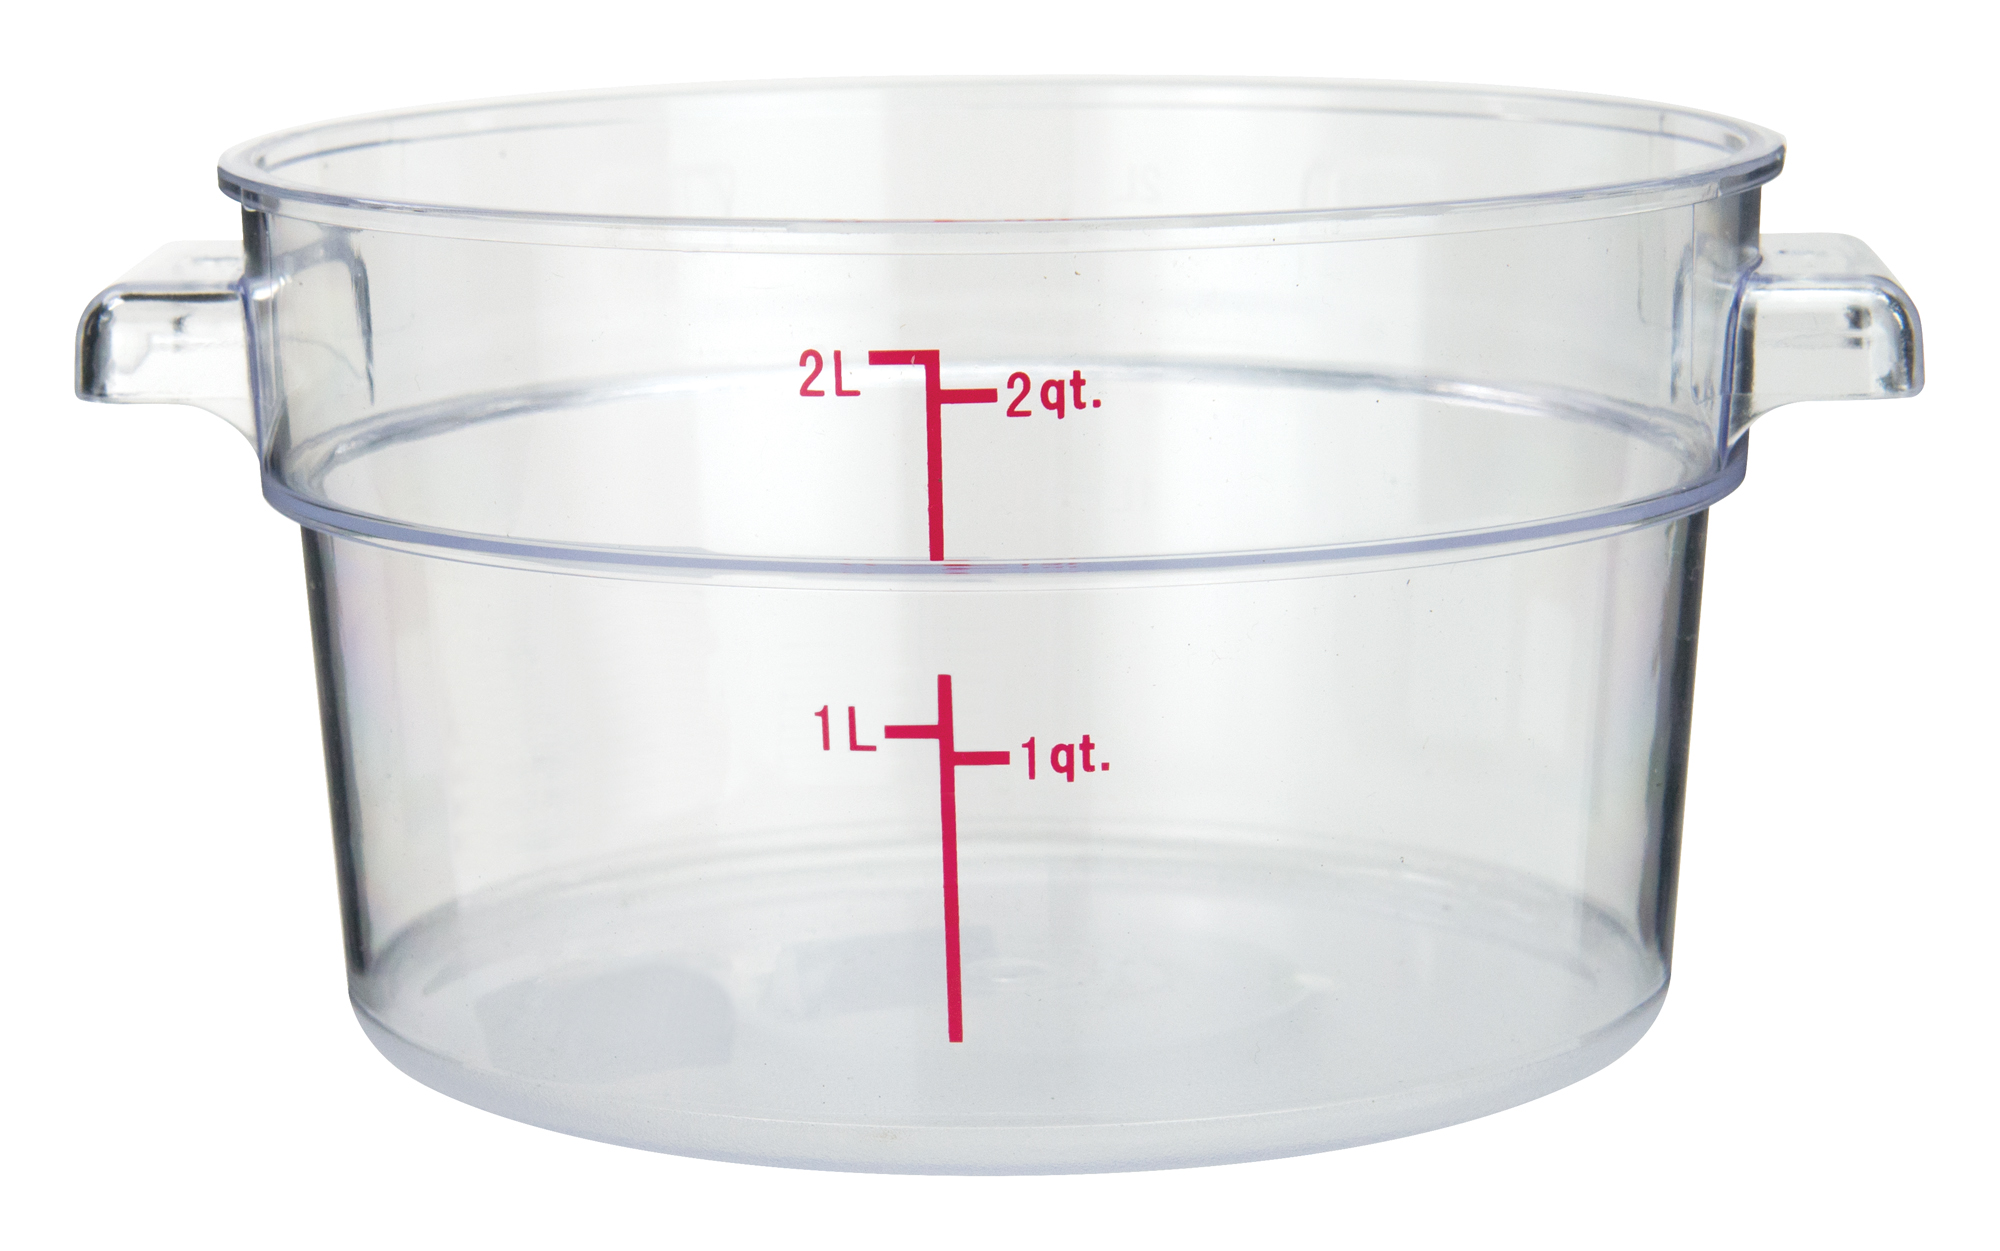 Winco PCRC-2 round food storage containers